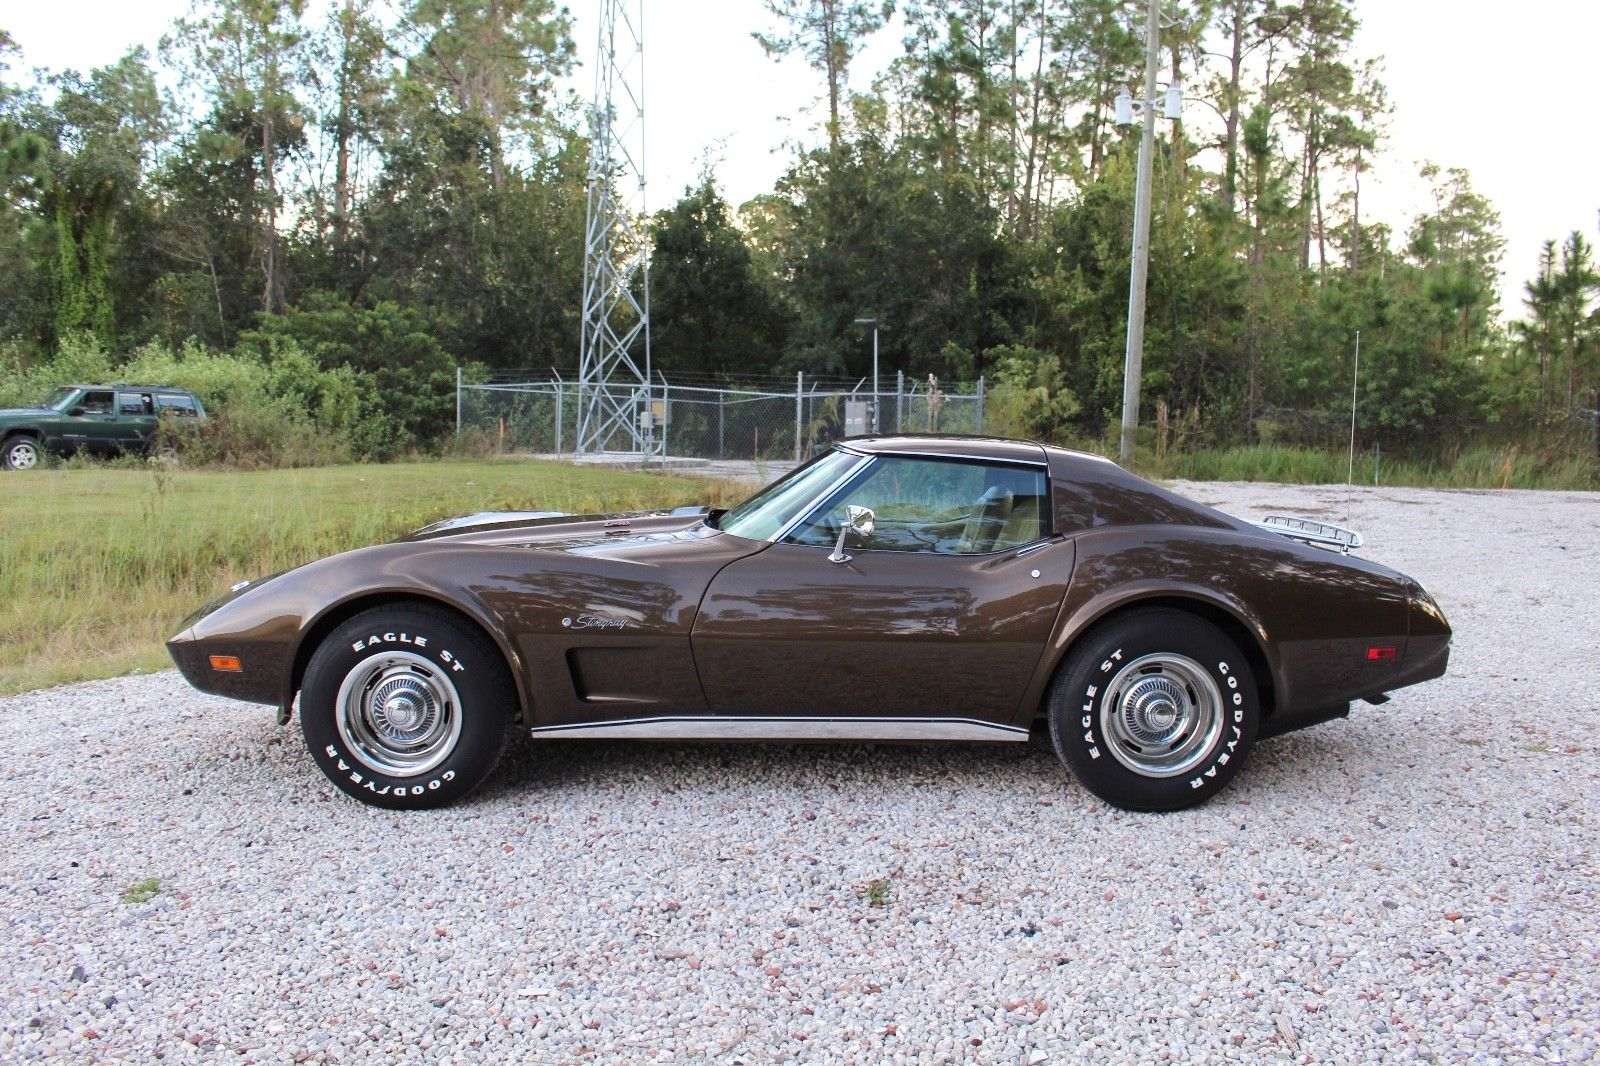 Chevrolet Corvette Stingray l48 t-top 120+ hd pictures must see